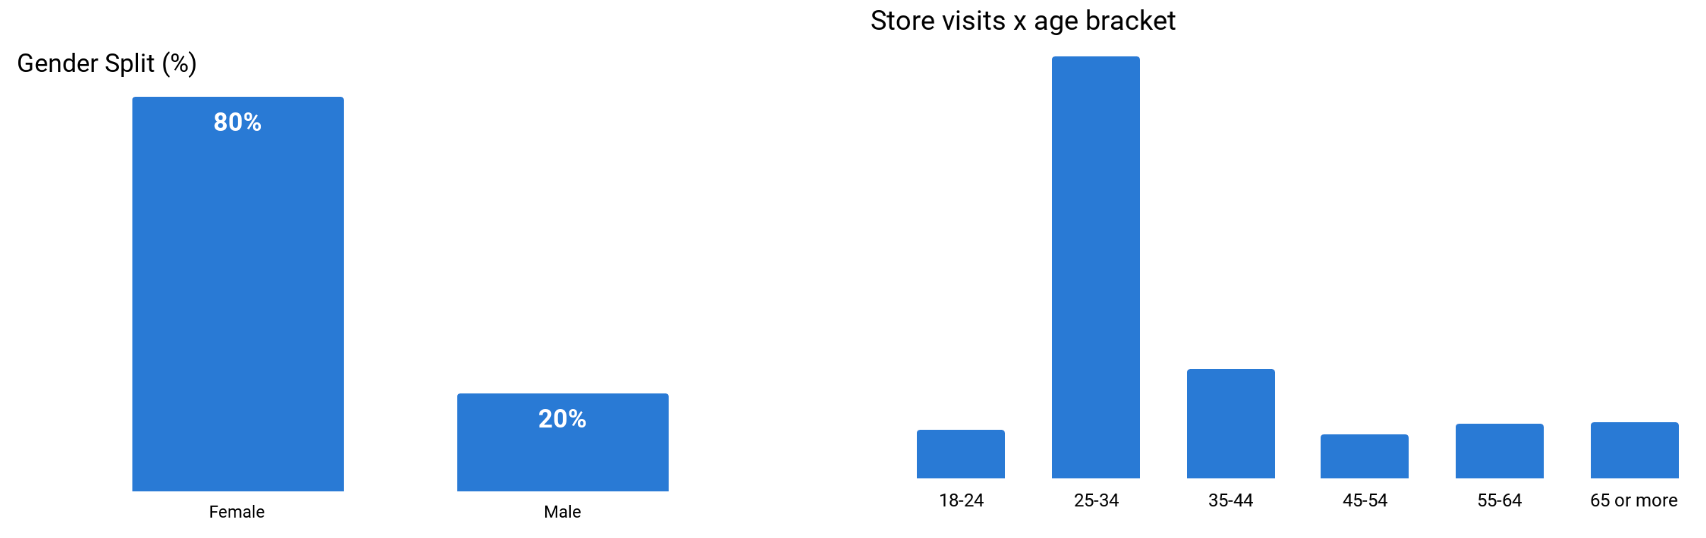 2 Demographic profile of store visits